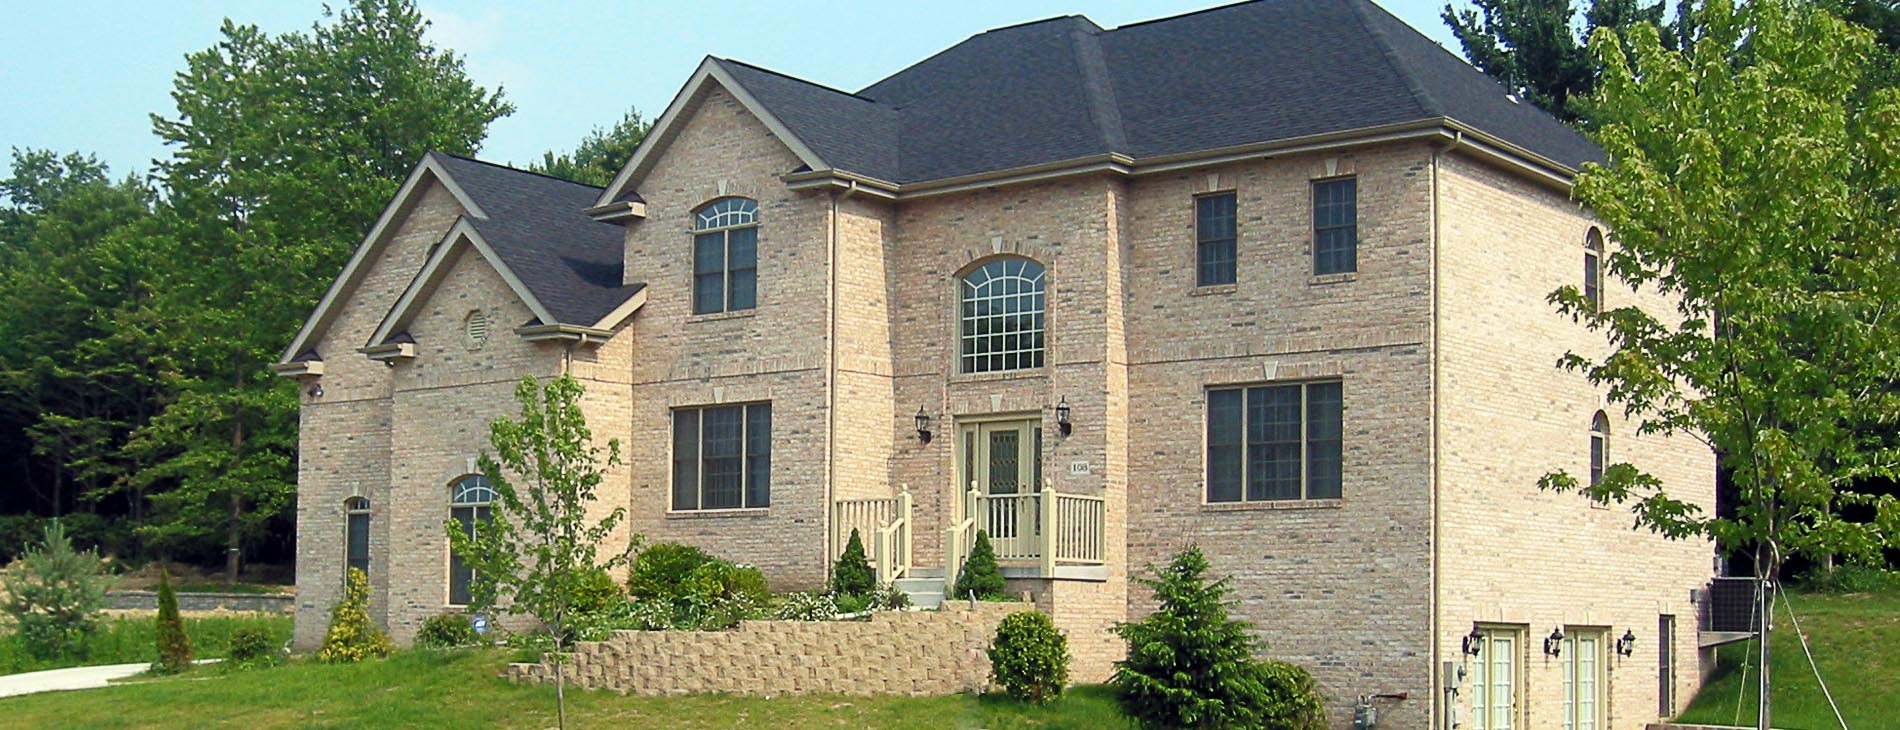 Custom Home Builder in South Fayette, PA